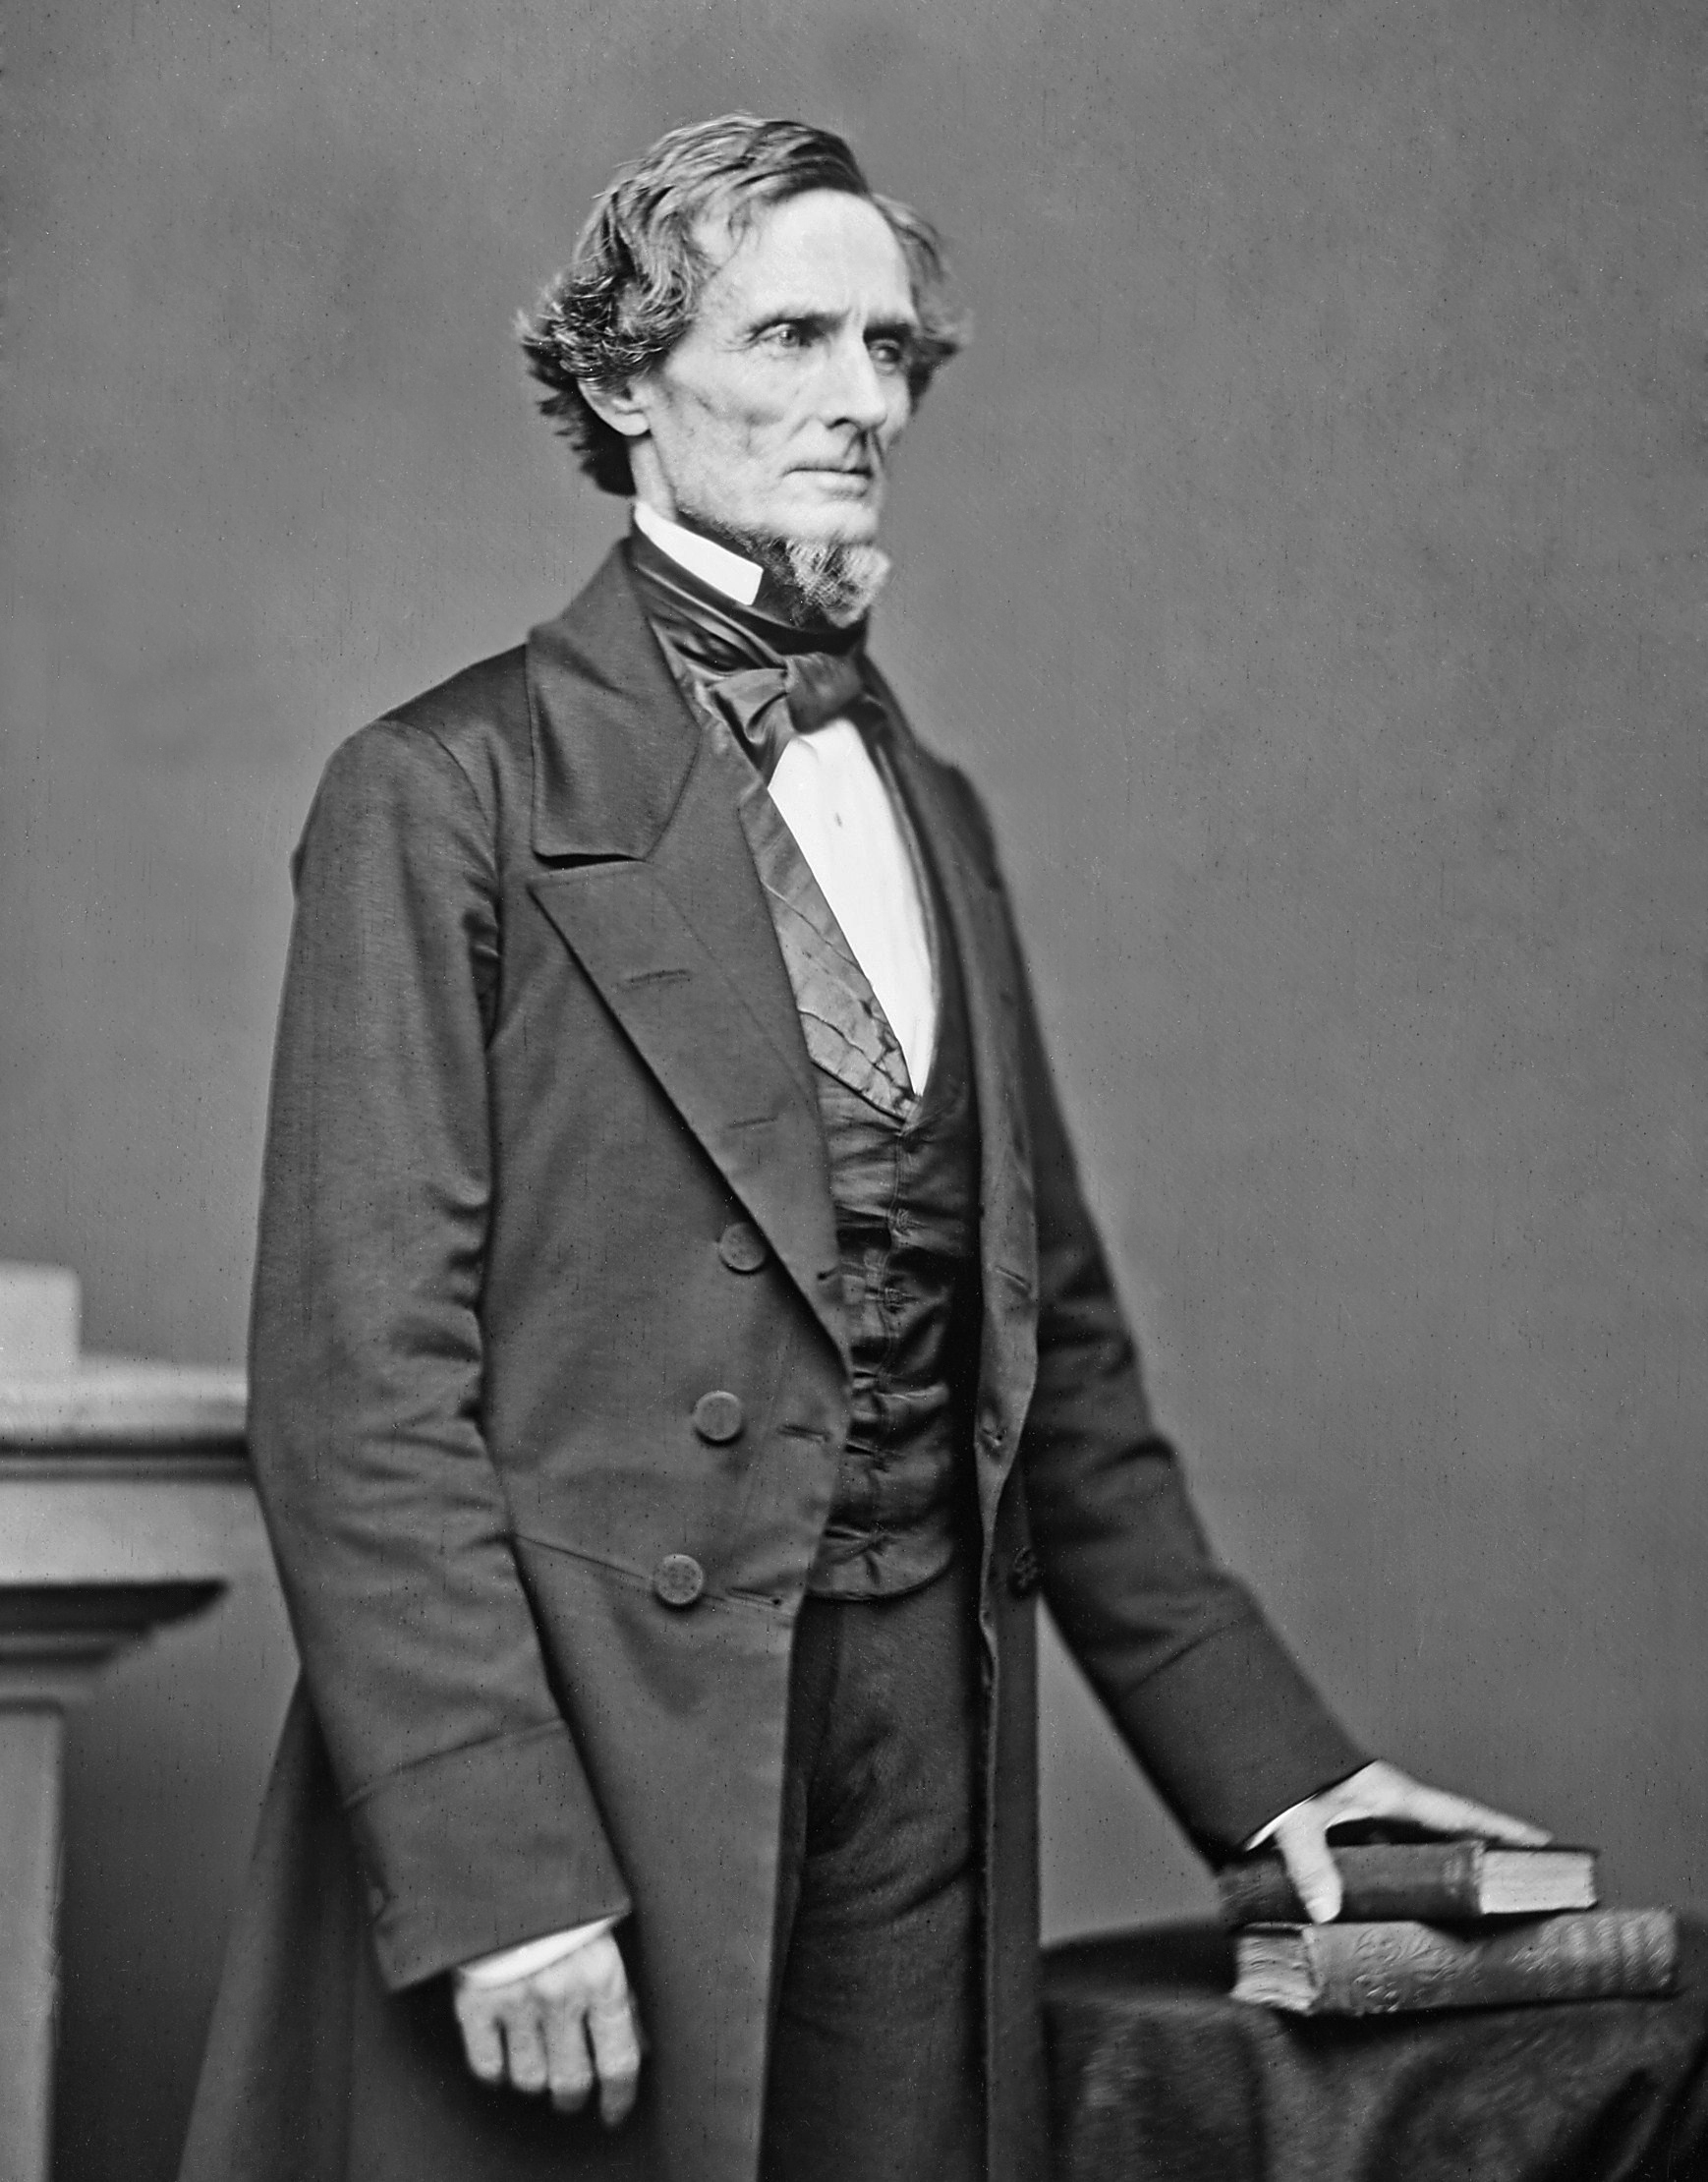 Jefferson Davis portrait by Mathew B. Brady